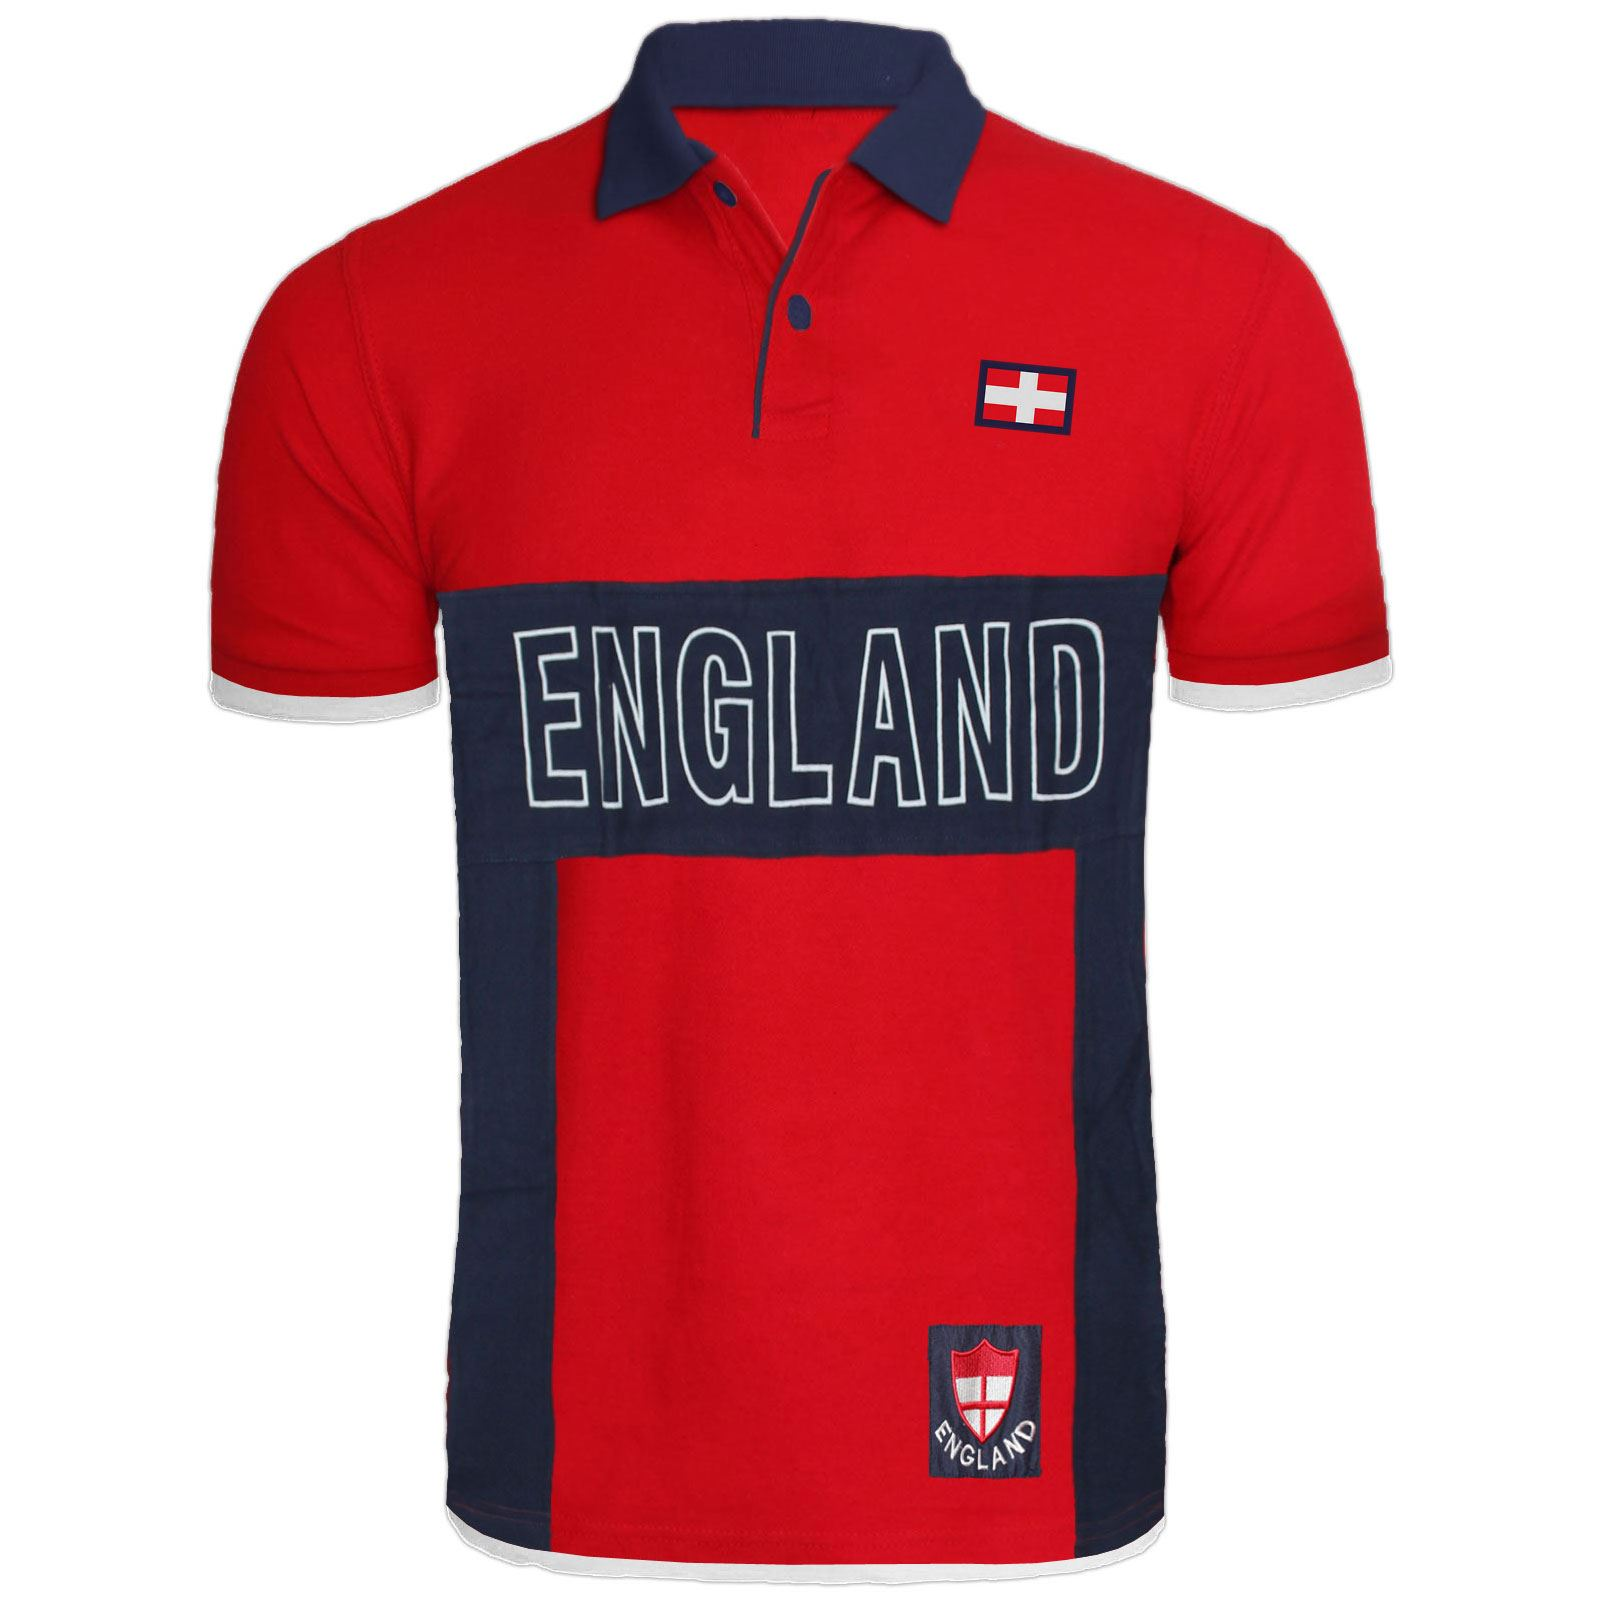 MENS-ENGLAND-TOP-POLO-T-SHIRTS-SHORT-SLEEVE-SPORTS-CRICKET-FOOTBALL-GOLF-TEES thumbnail 2